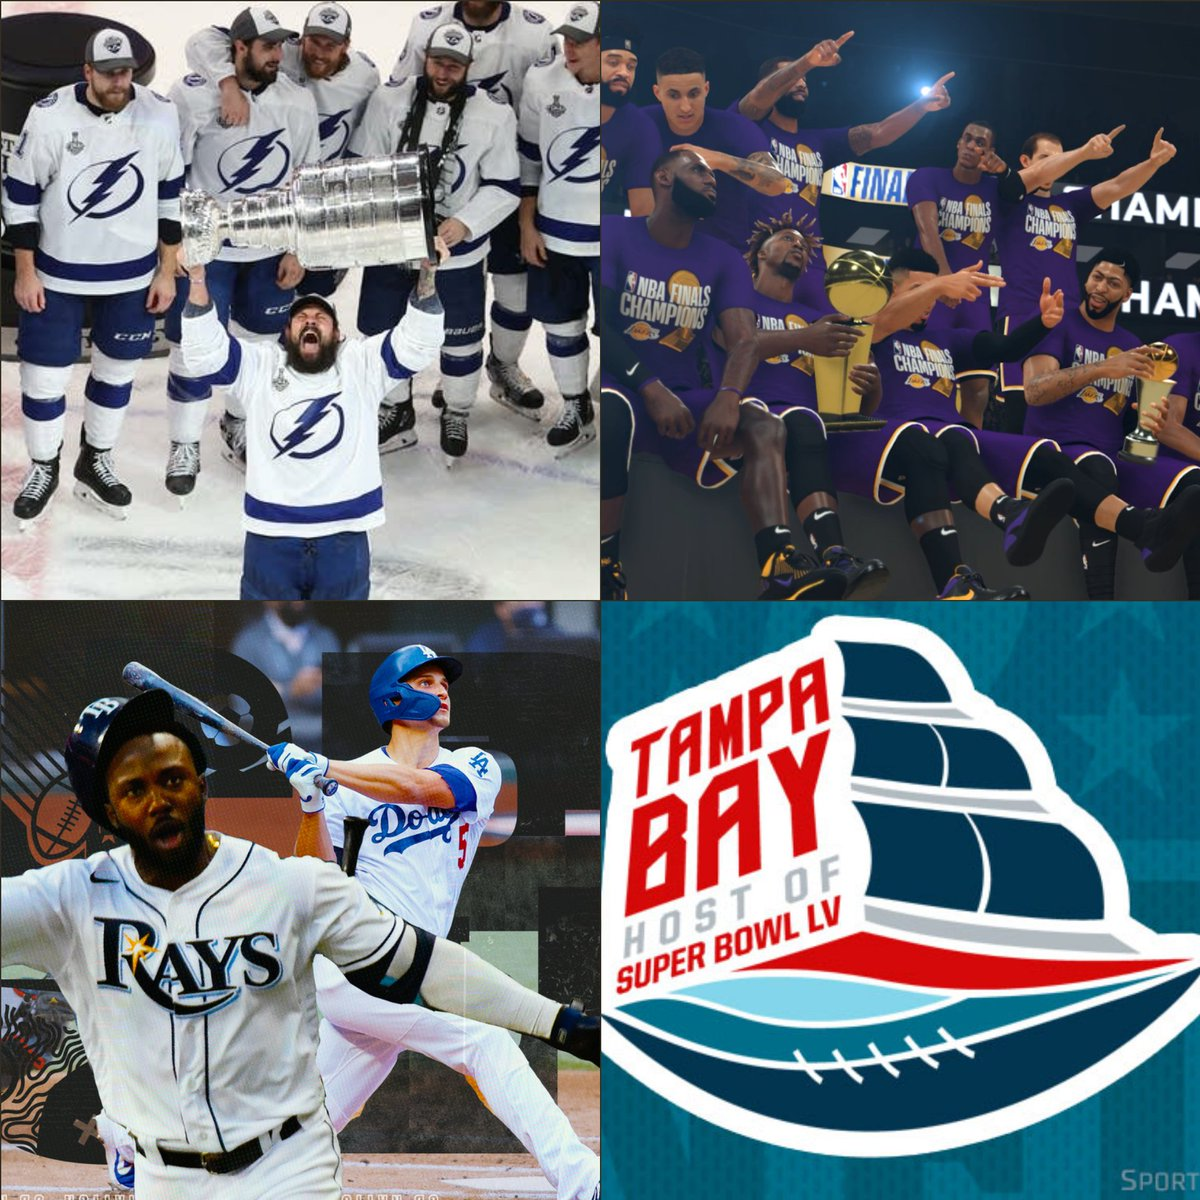 Why are Tampa Bay and LA the only cities allowed to win the 4 major championships during the COVID pandemic? @espn @NHL @NBA @MLB @NFL @TBLightning @Lakers @RaysBaseball @Dodgers @Buccaneers @TomBrady #Foreshadowing https://t.co/NkCazlQCWx